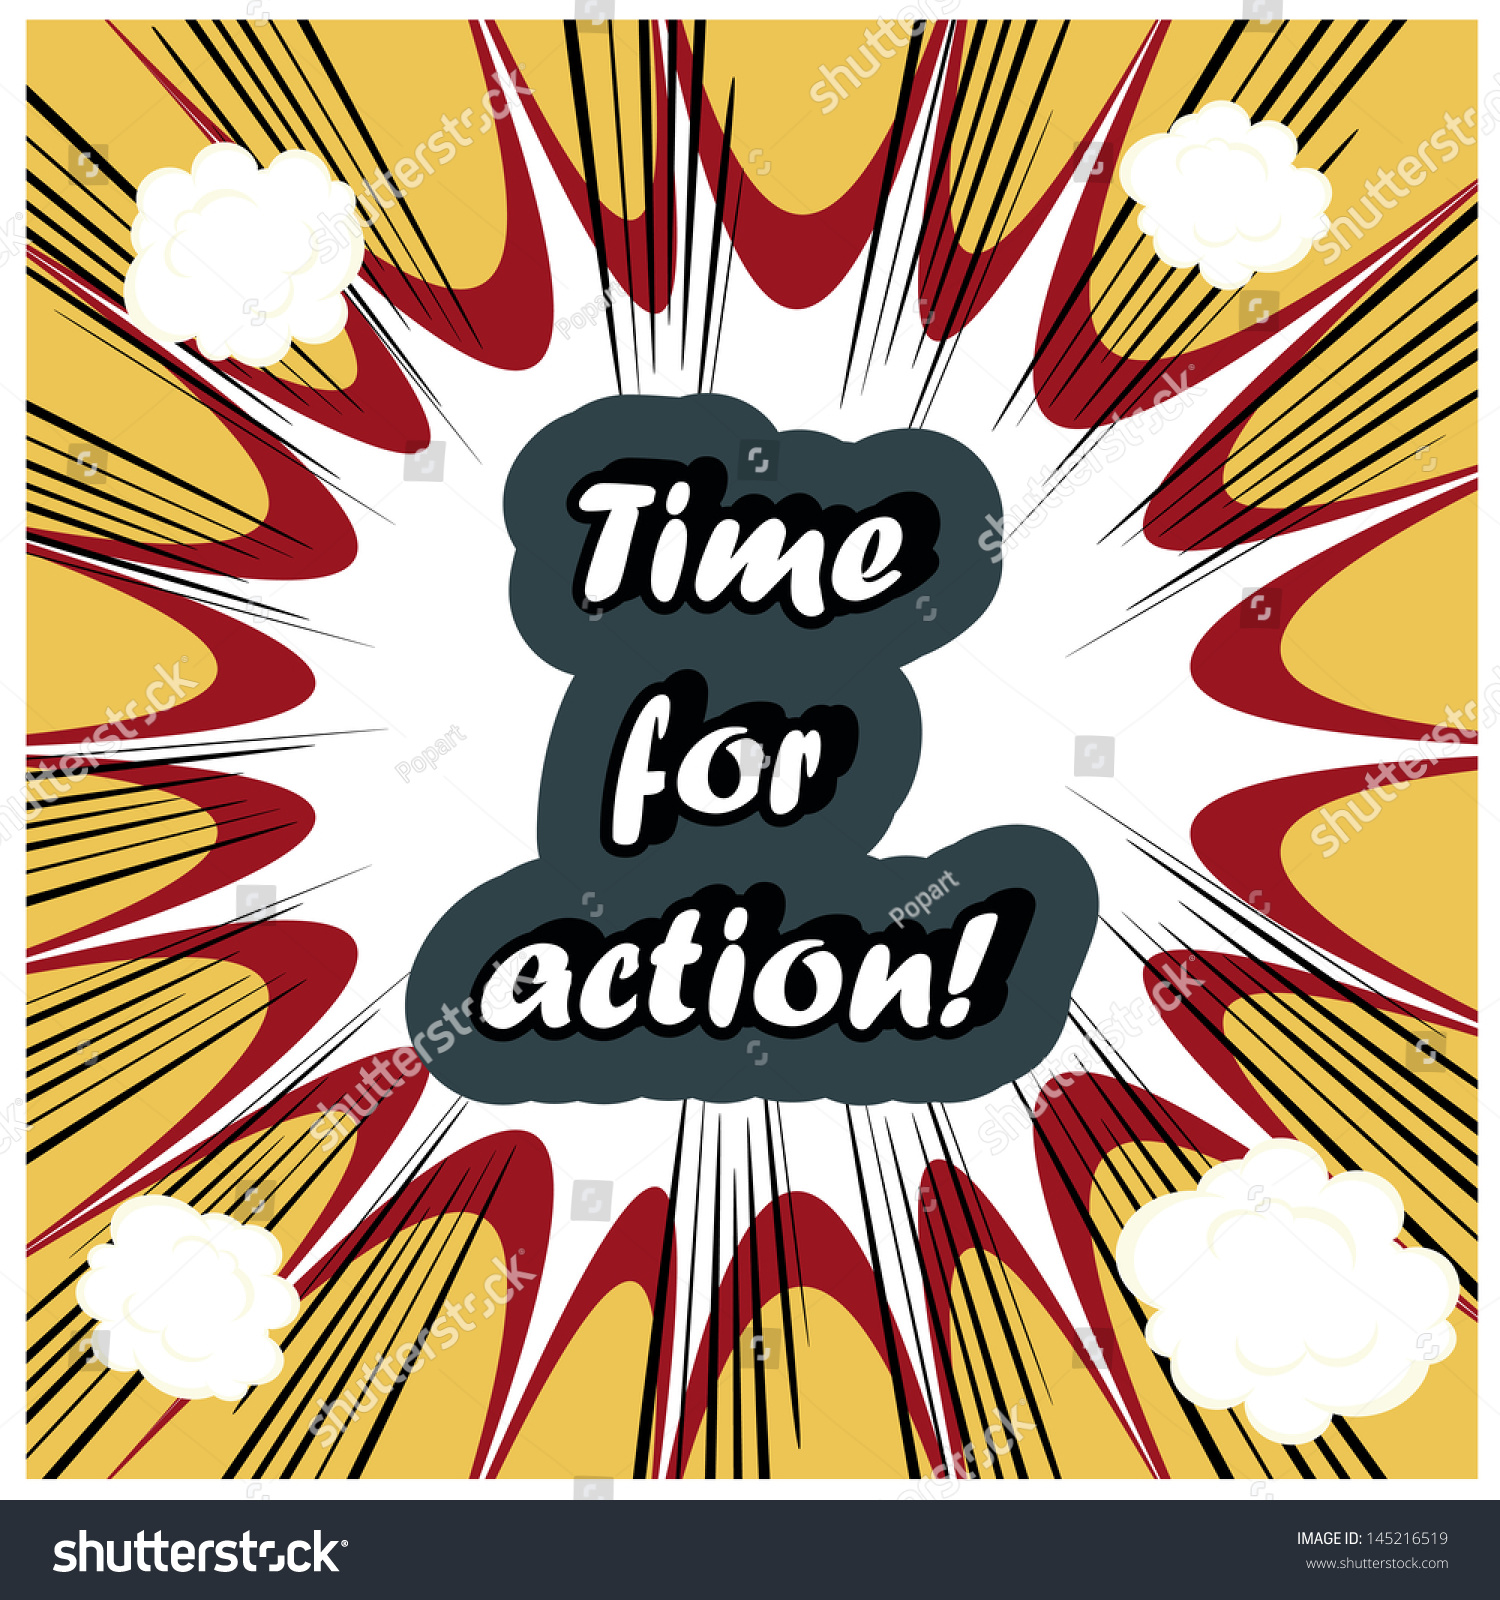 Time for Action Clip Art